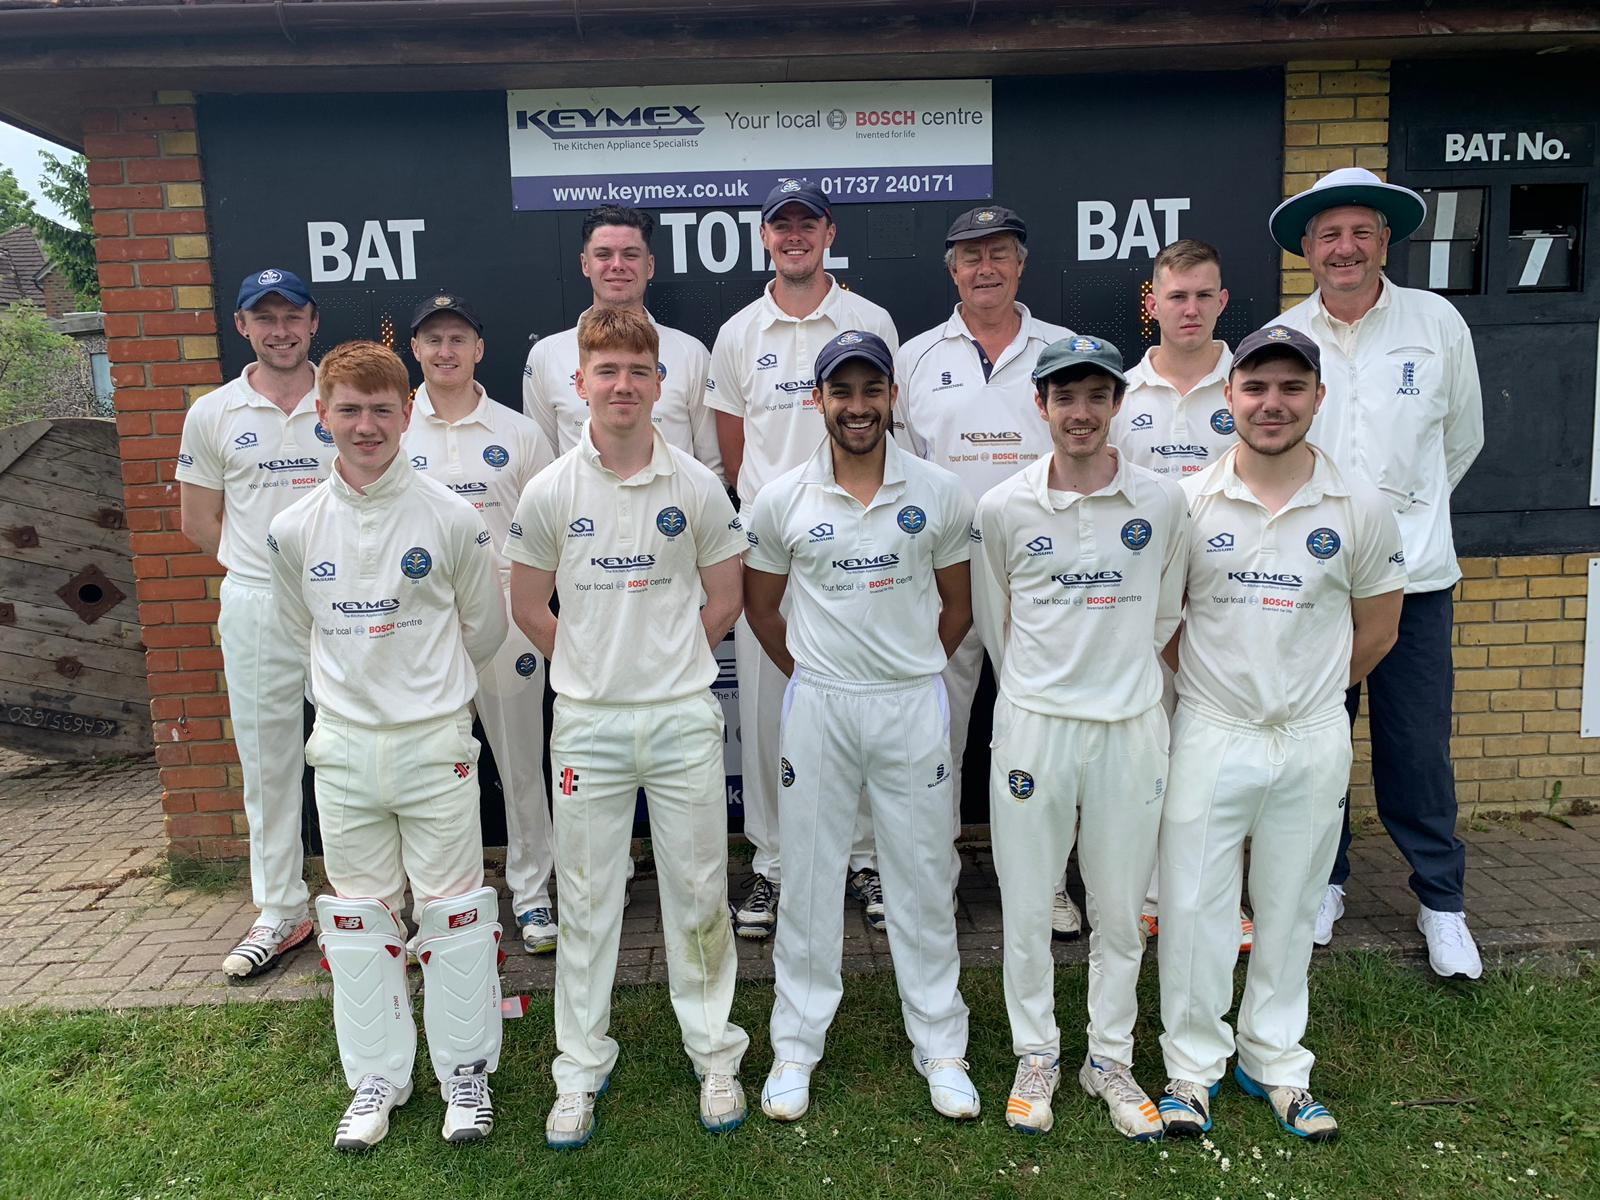 Male cricket team stand in front of scoreboard